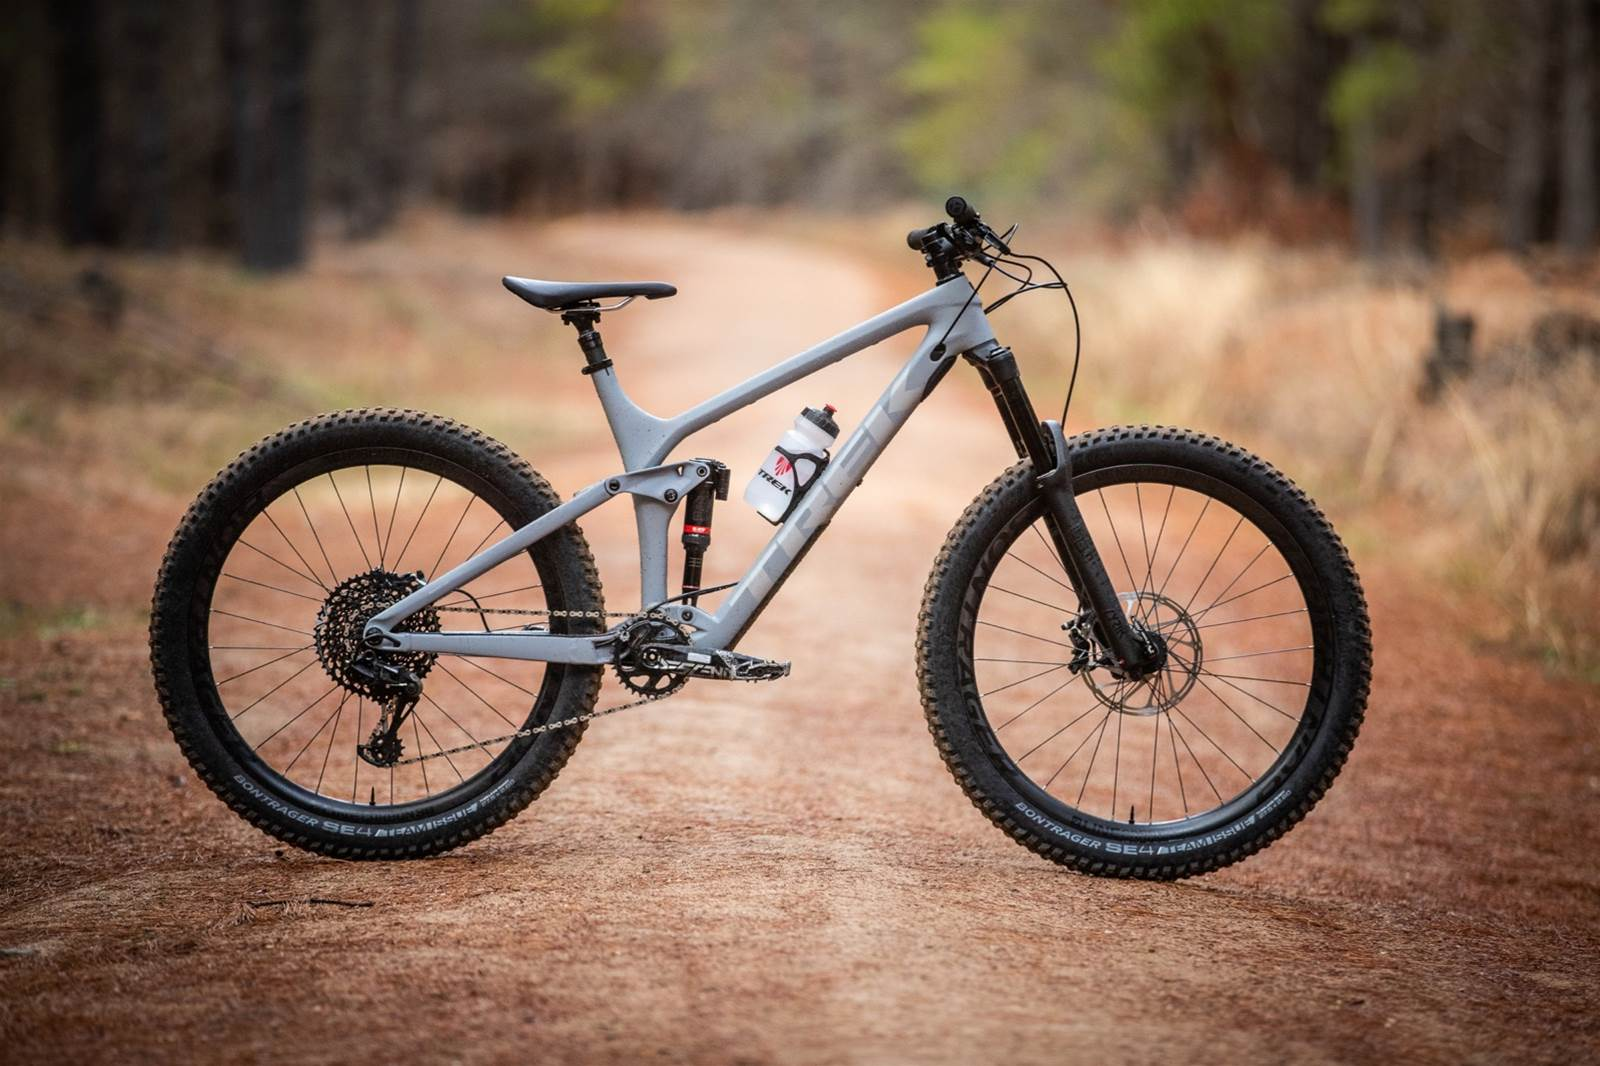 What's new on the Trek Remedy 9.8?